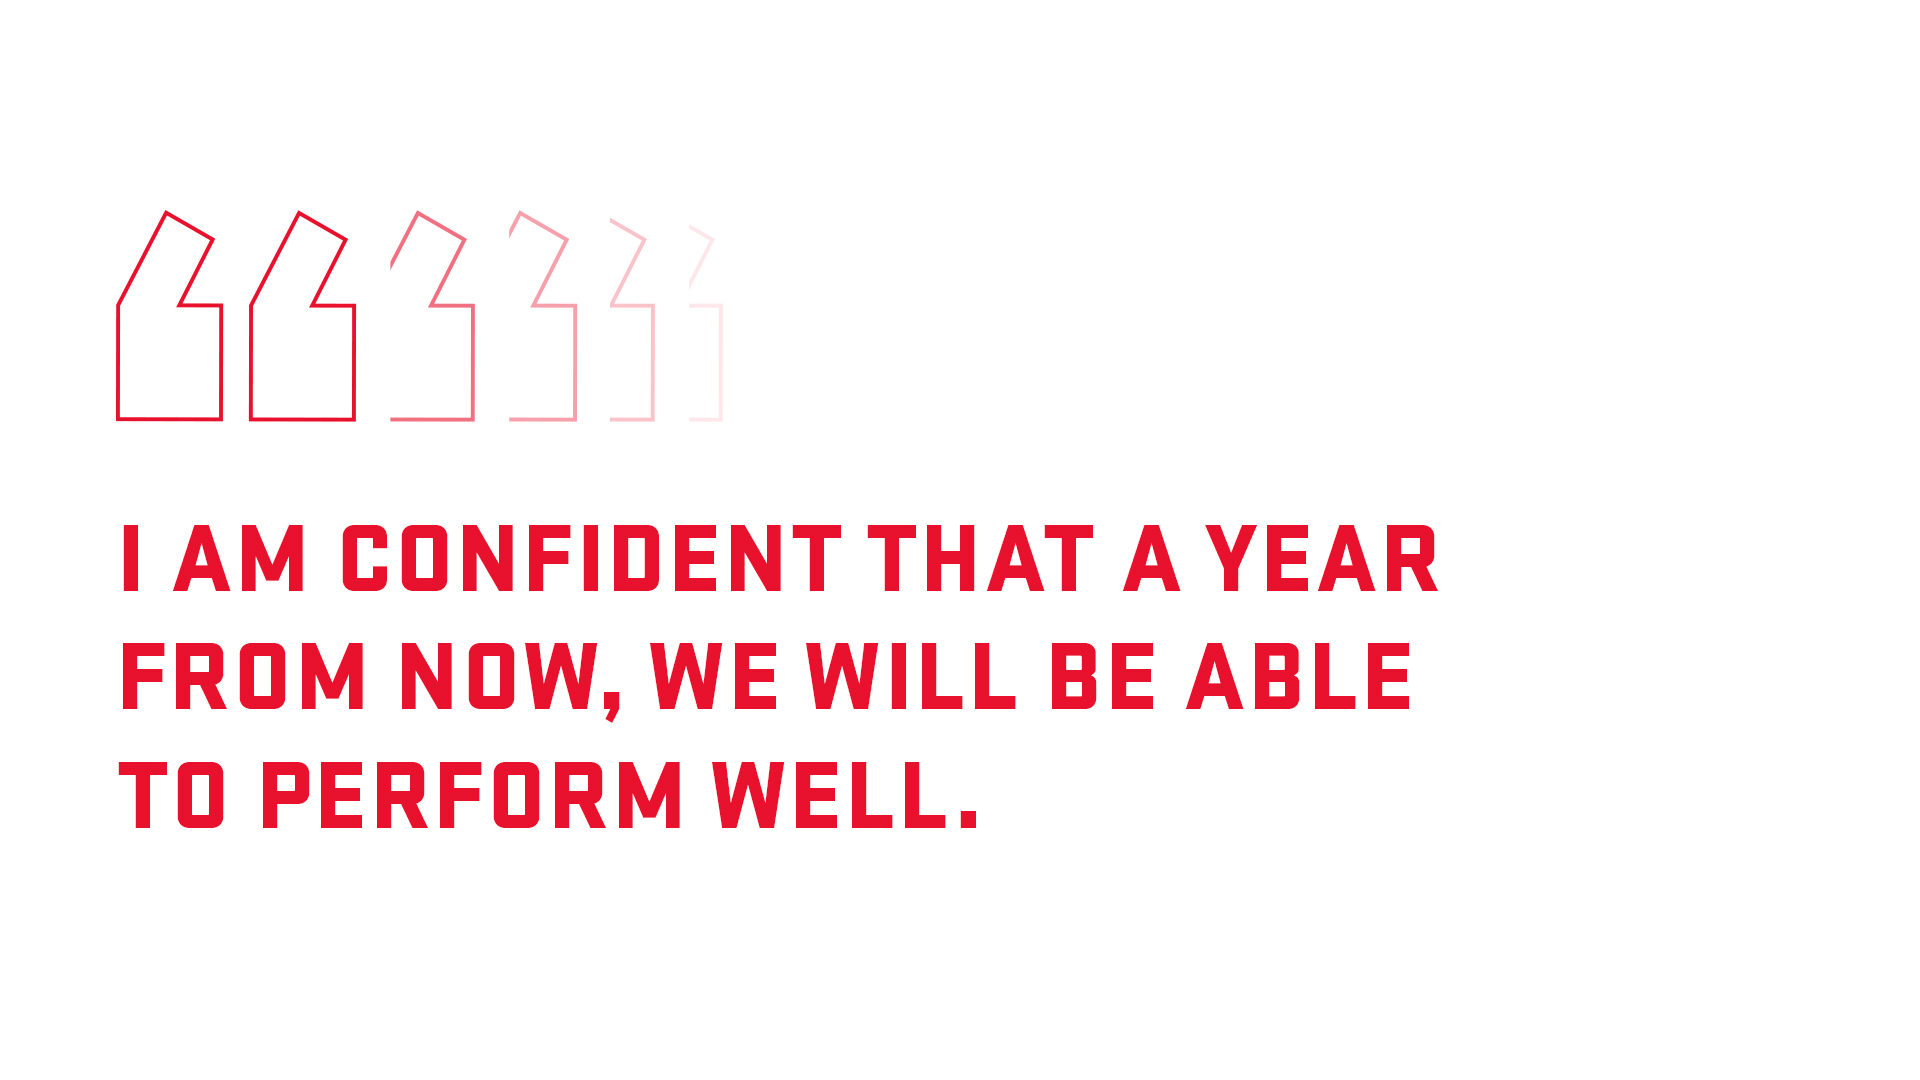 I am confident that a year from now, we will be able to perform well.